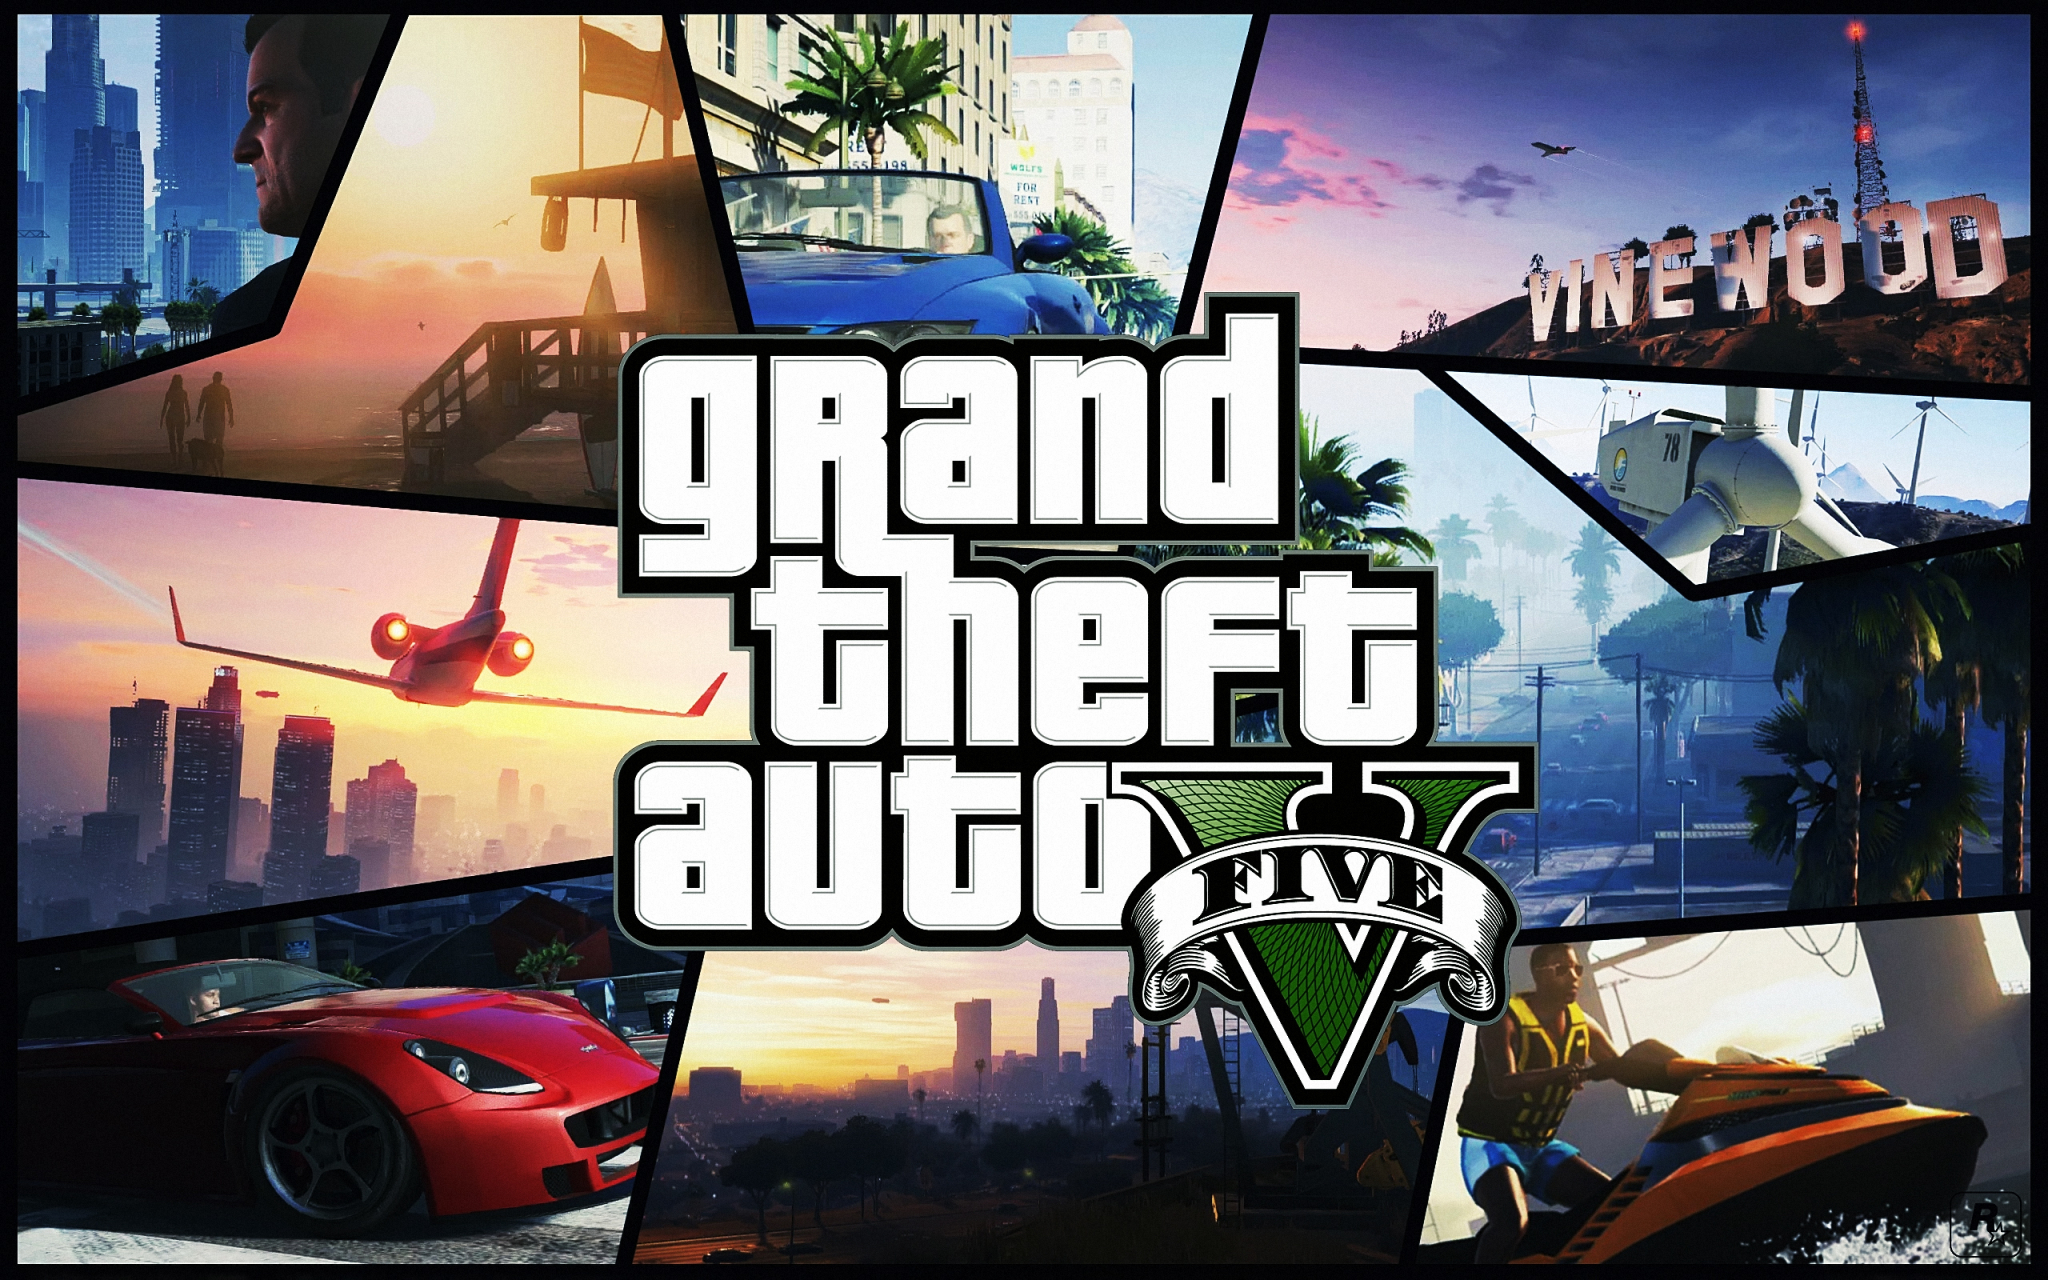 gran theft auto V, gta V, download gta 5 ita pc